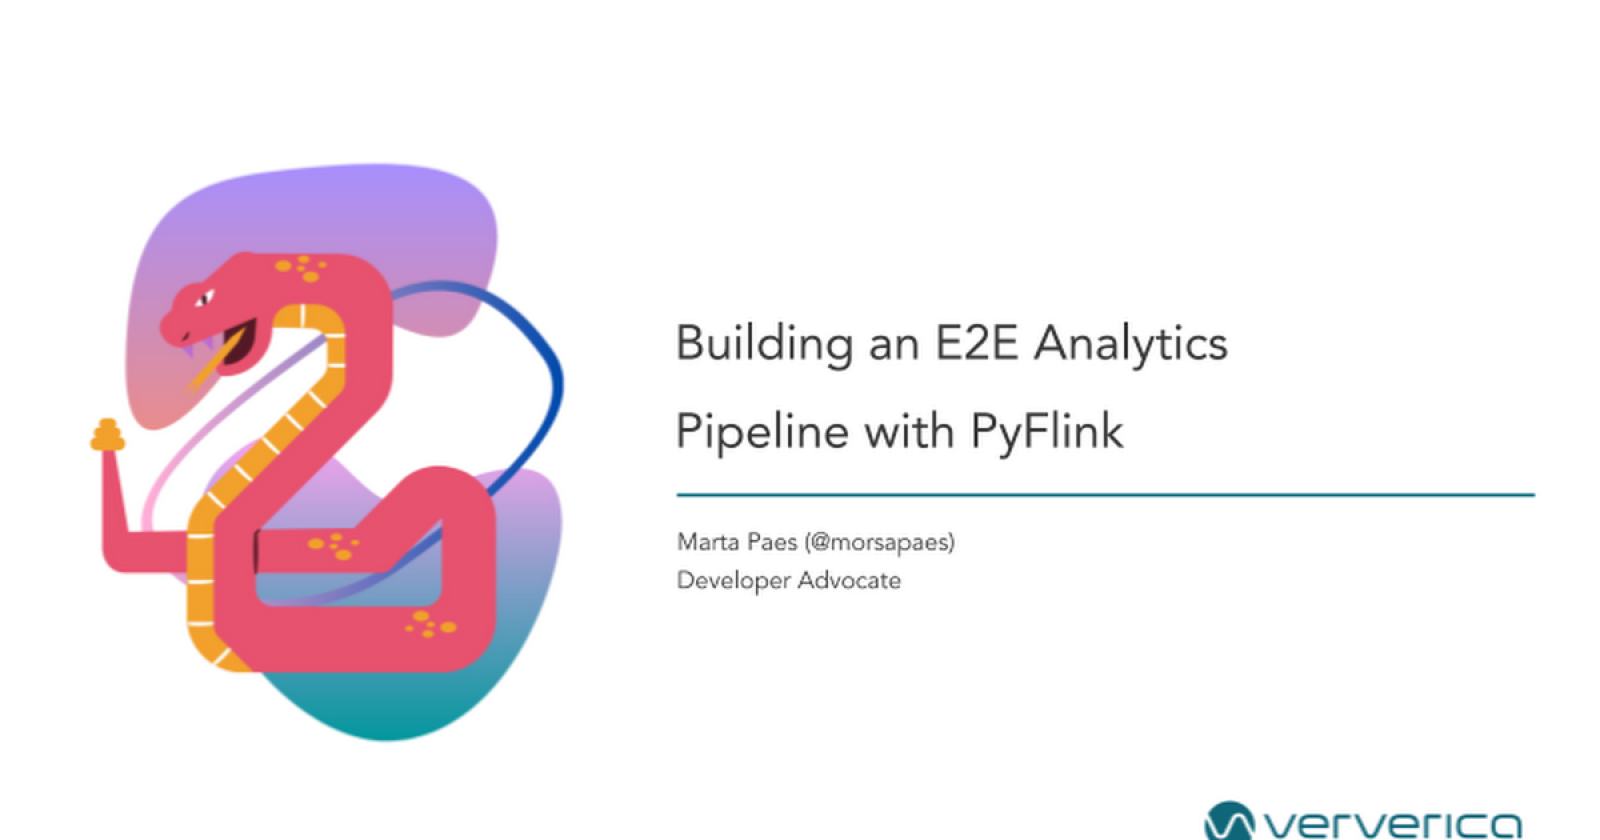 Building an End-to-End Analytics Pipeline with PyFlink by Marta Paes